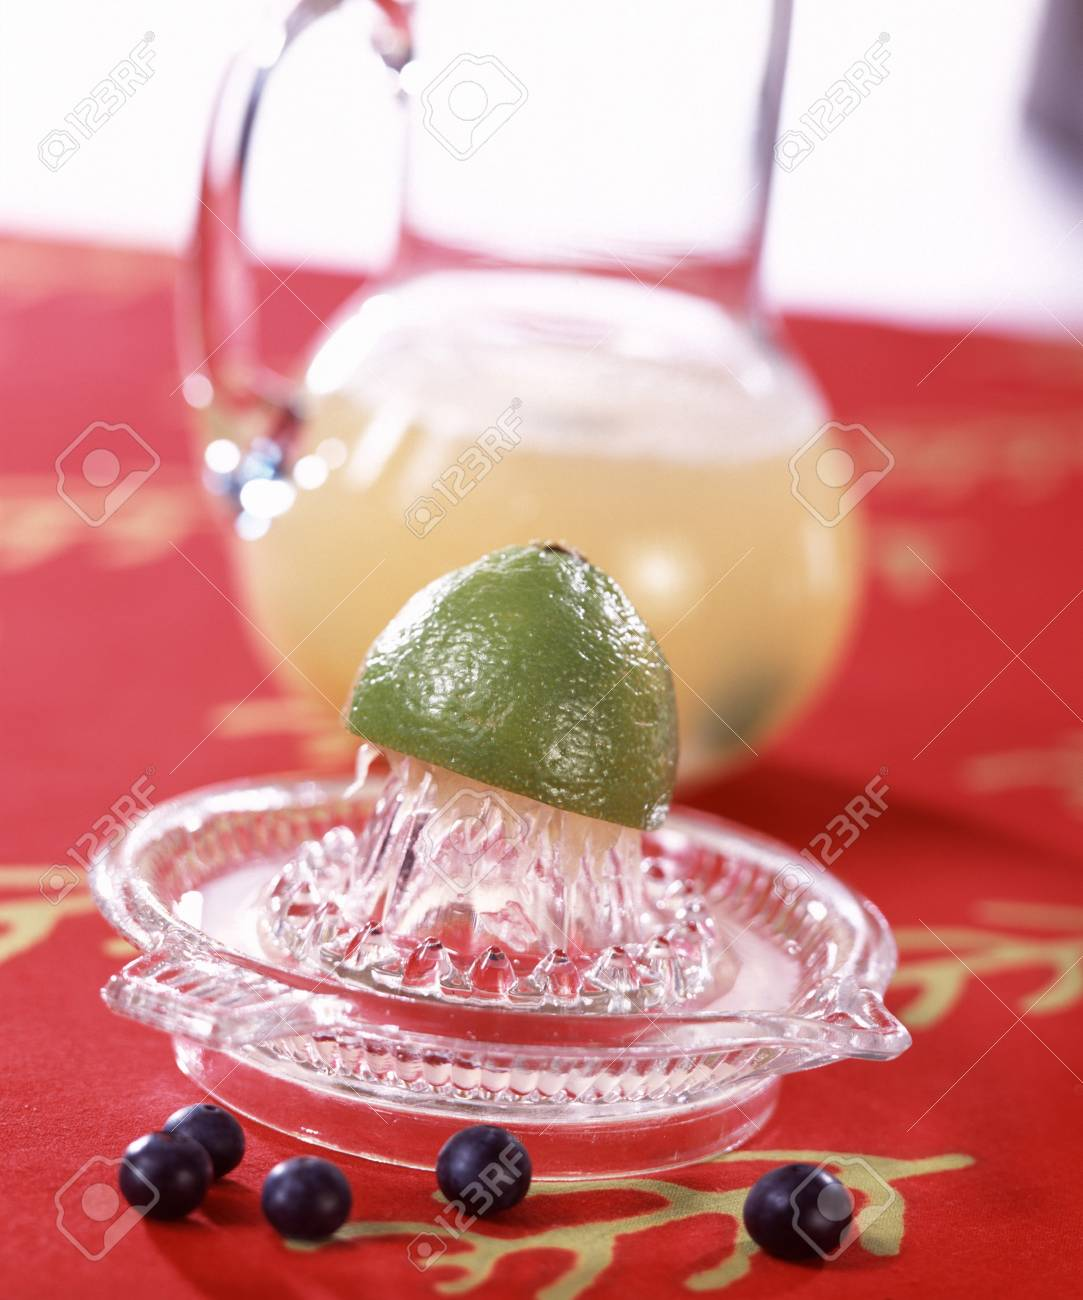 Lemonade with blueberries Stock Photo - 17026199